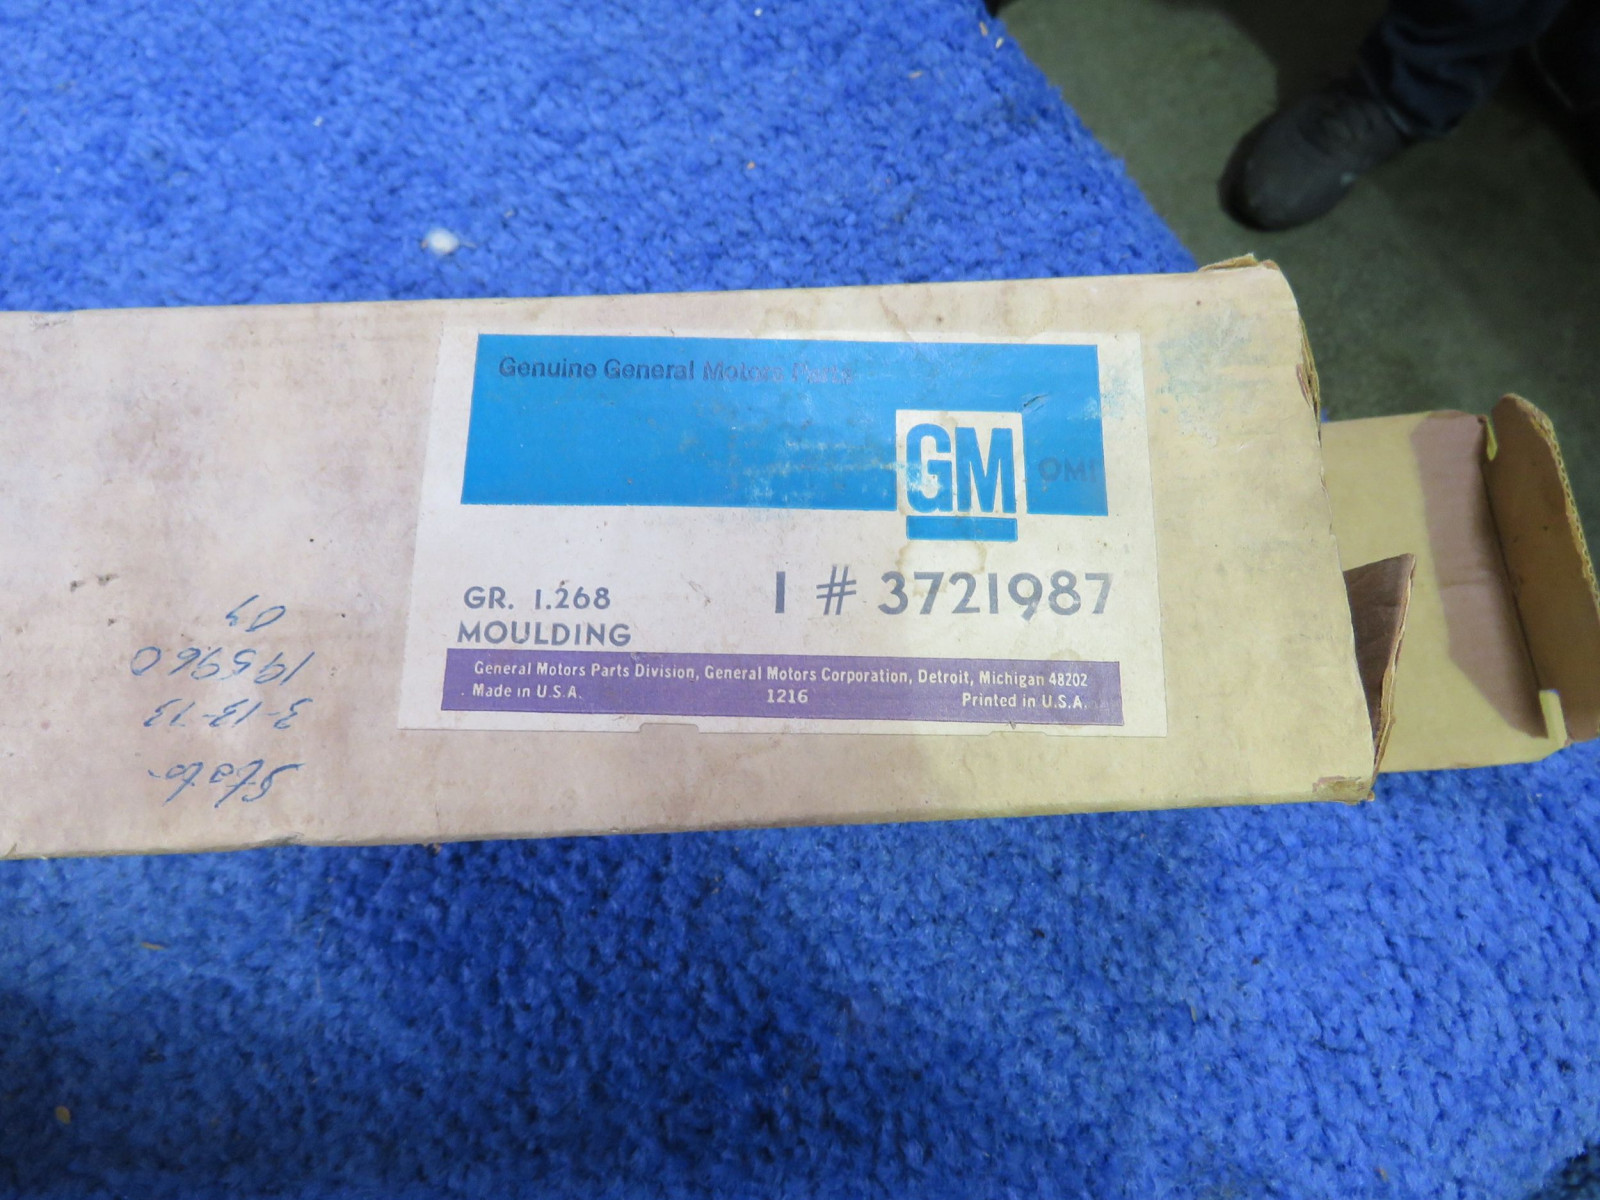 NOS 1956 Chevrolet Grill Moldings - Image 2